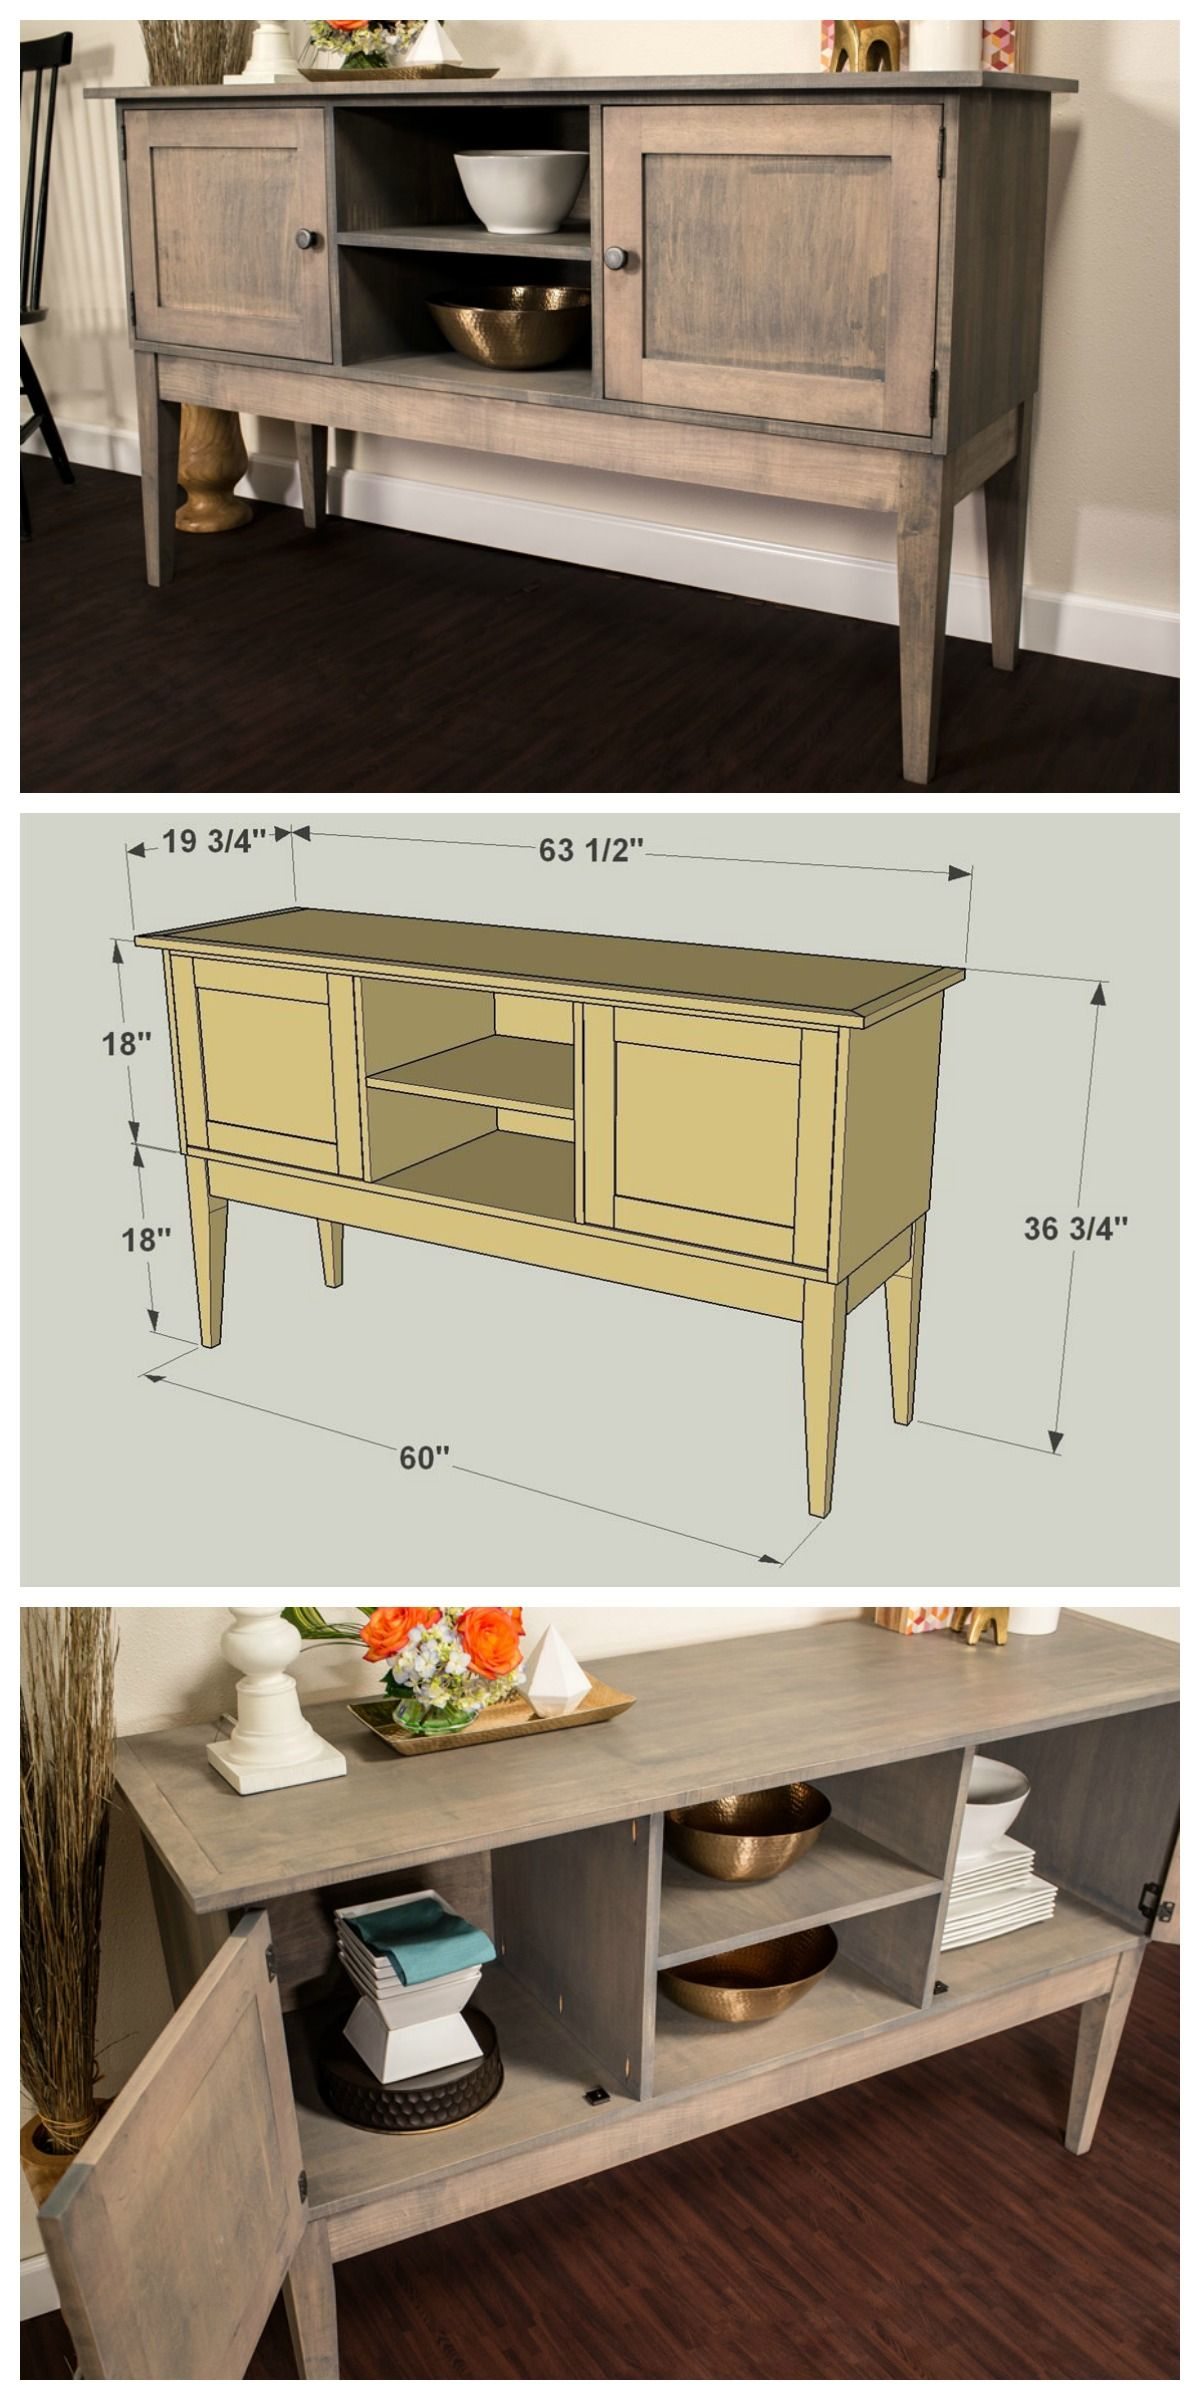 How to build a classic sideboard to maximize your storage and style